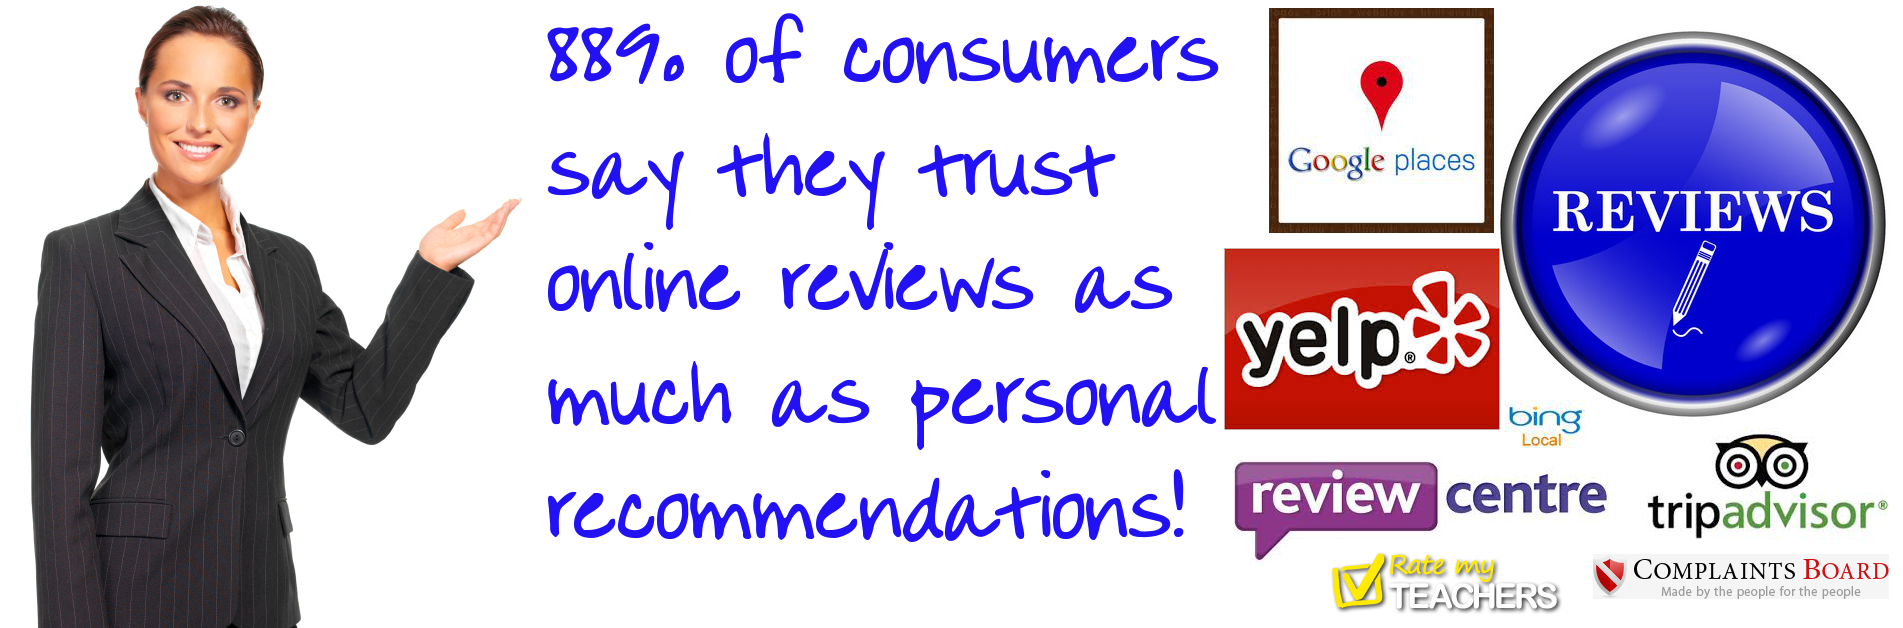 You should care about online reviews